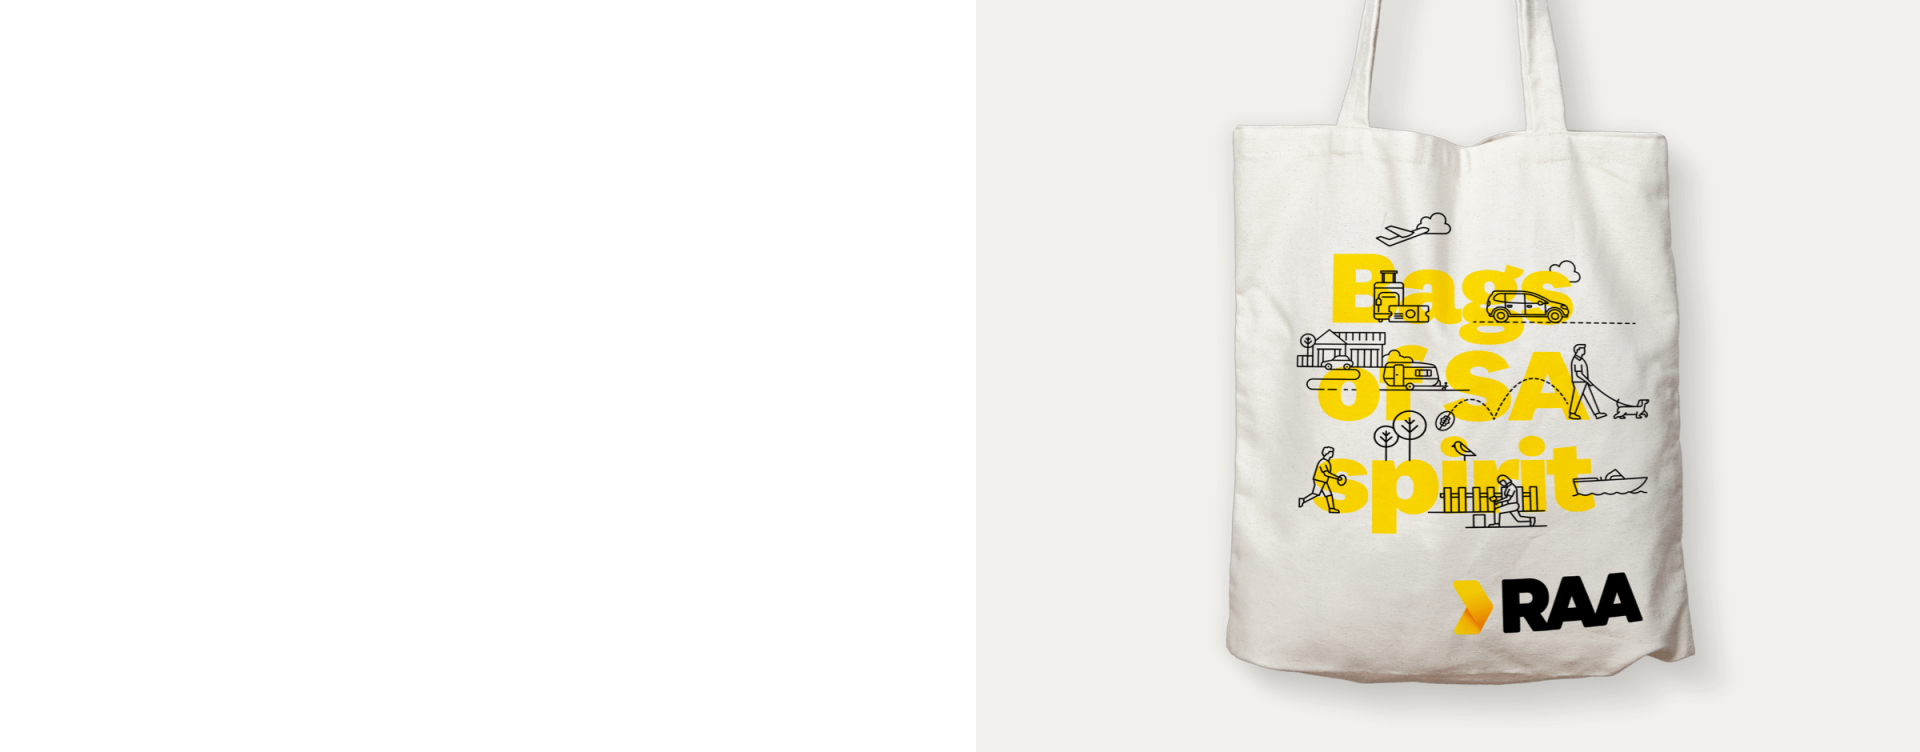 """A canvas bag with illustrations over the yellow text """"Bags of SA spirit"""""""